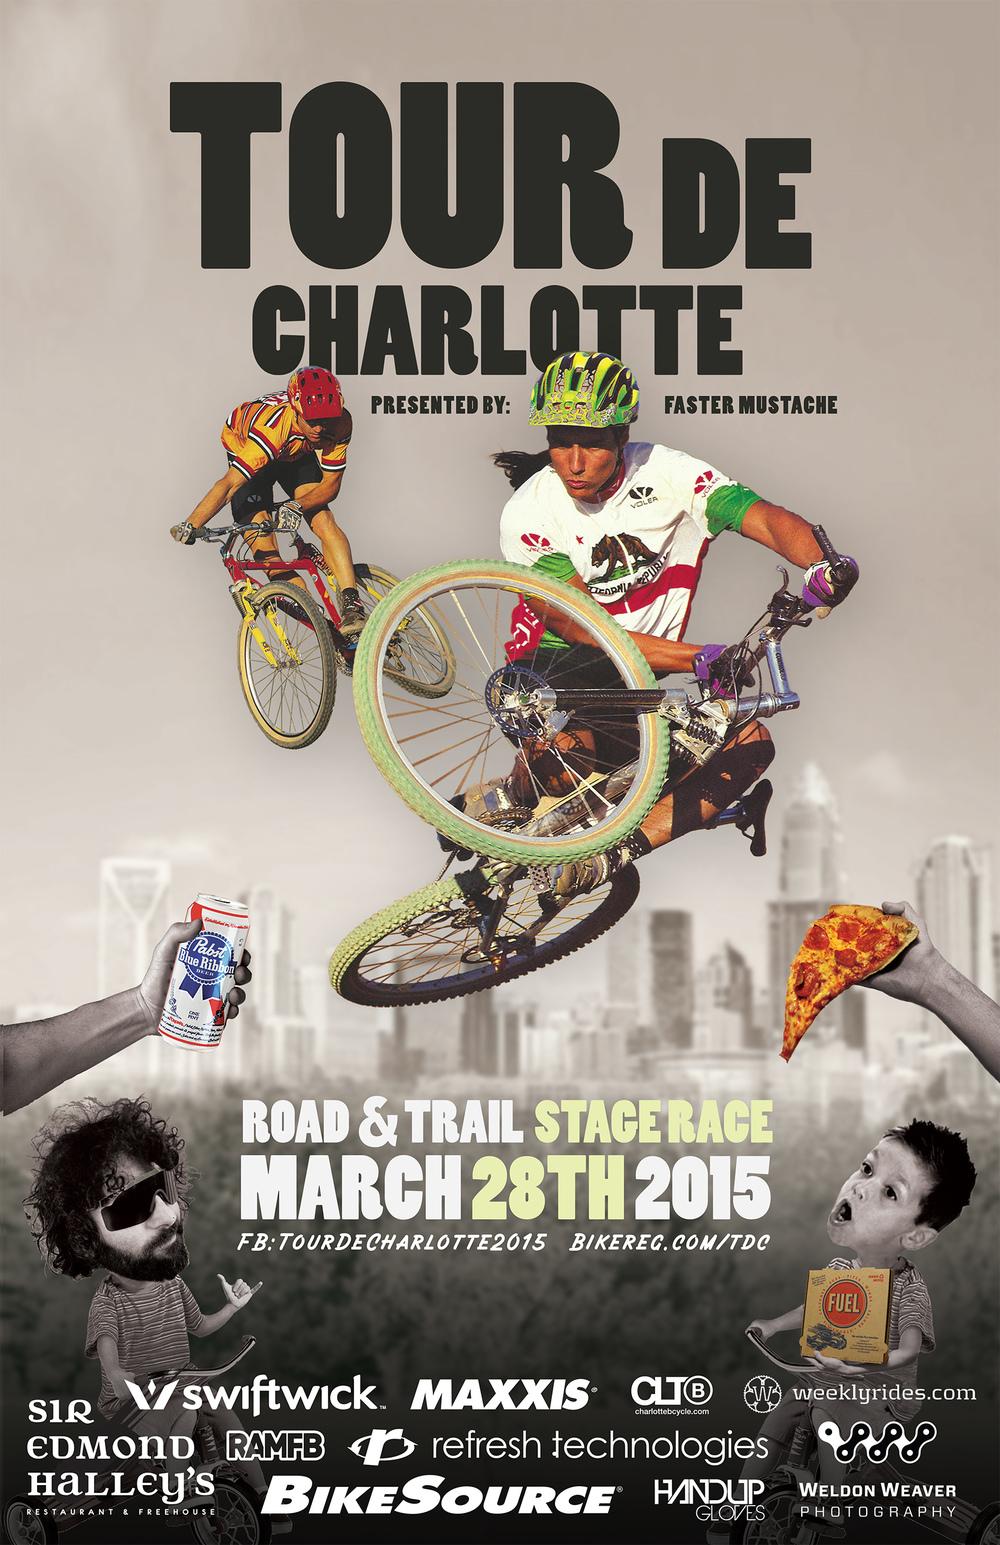 Tour de Charlotte 2015 poster art by Paw Cunningham